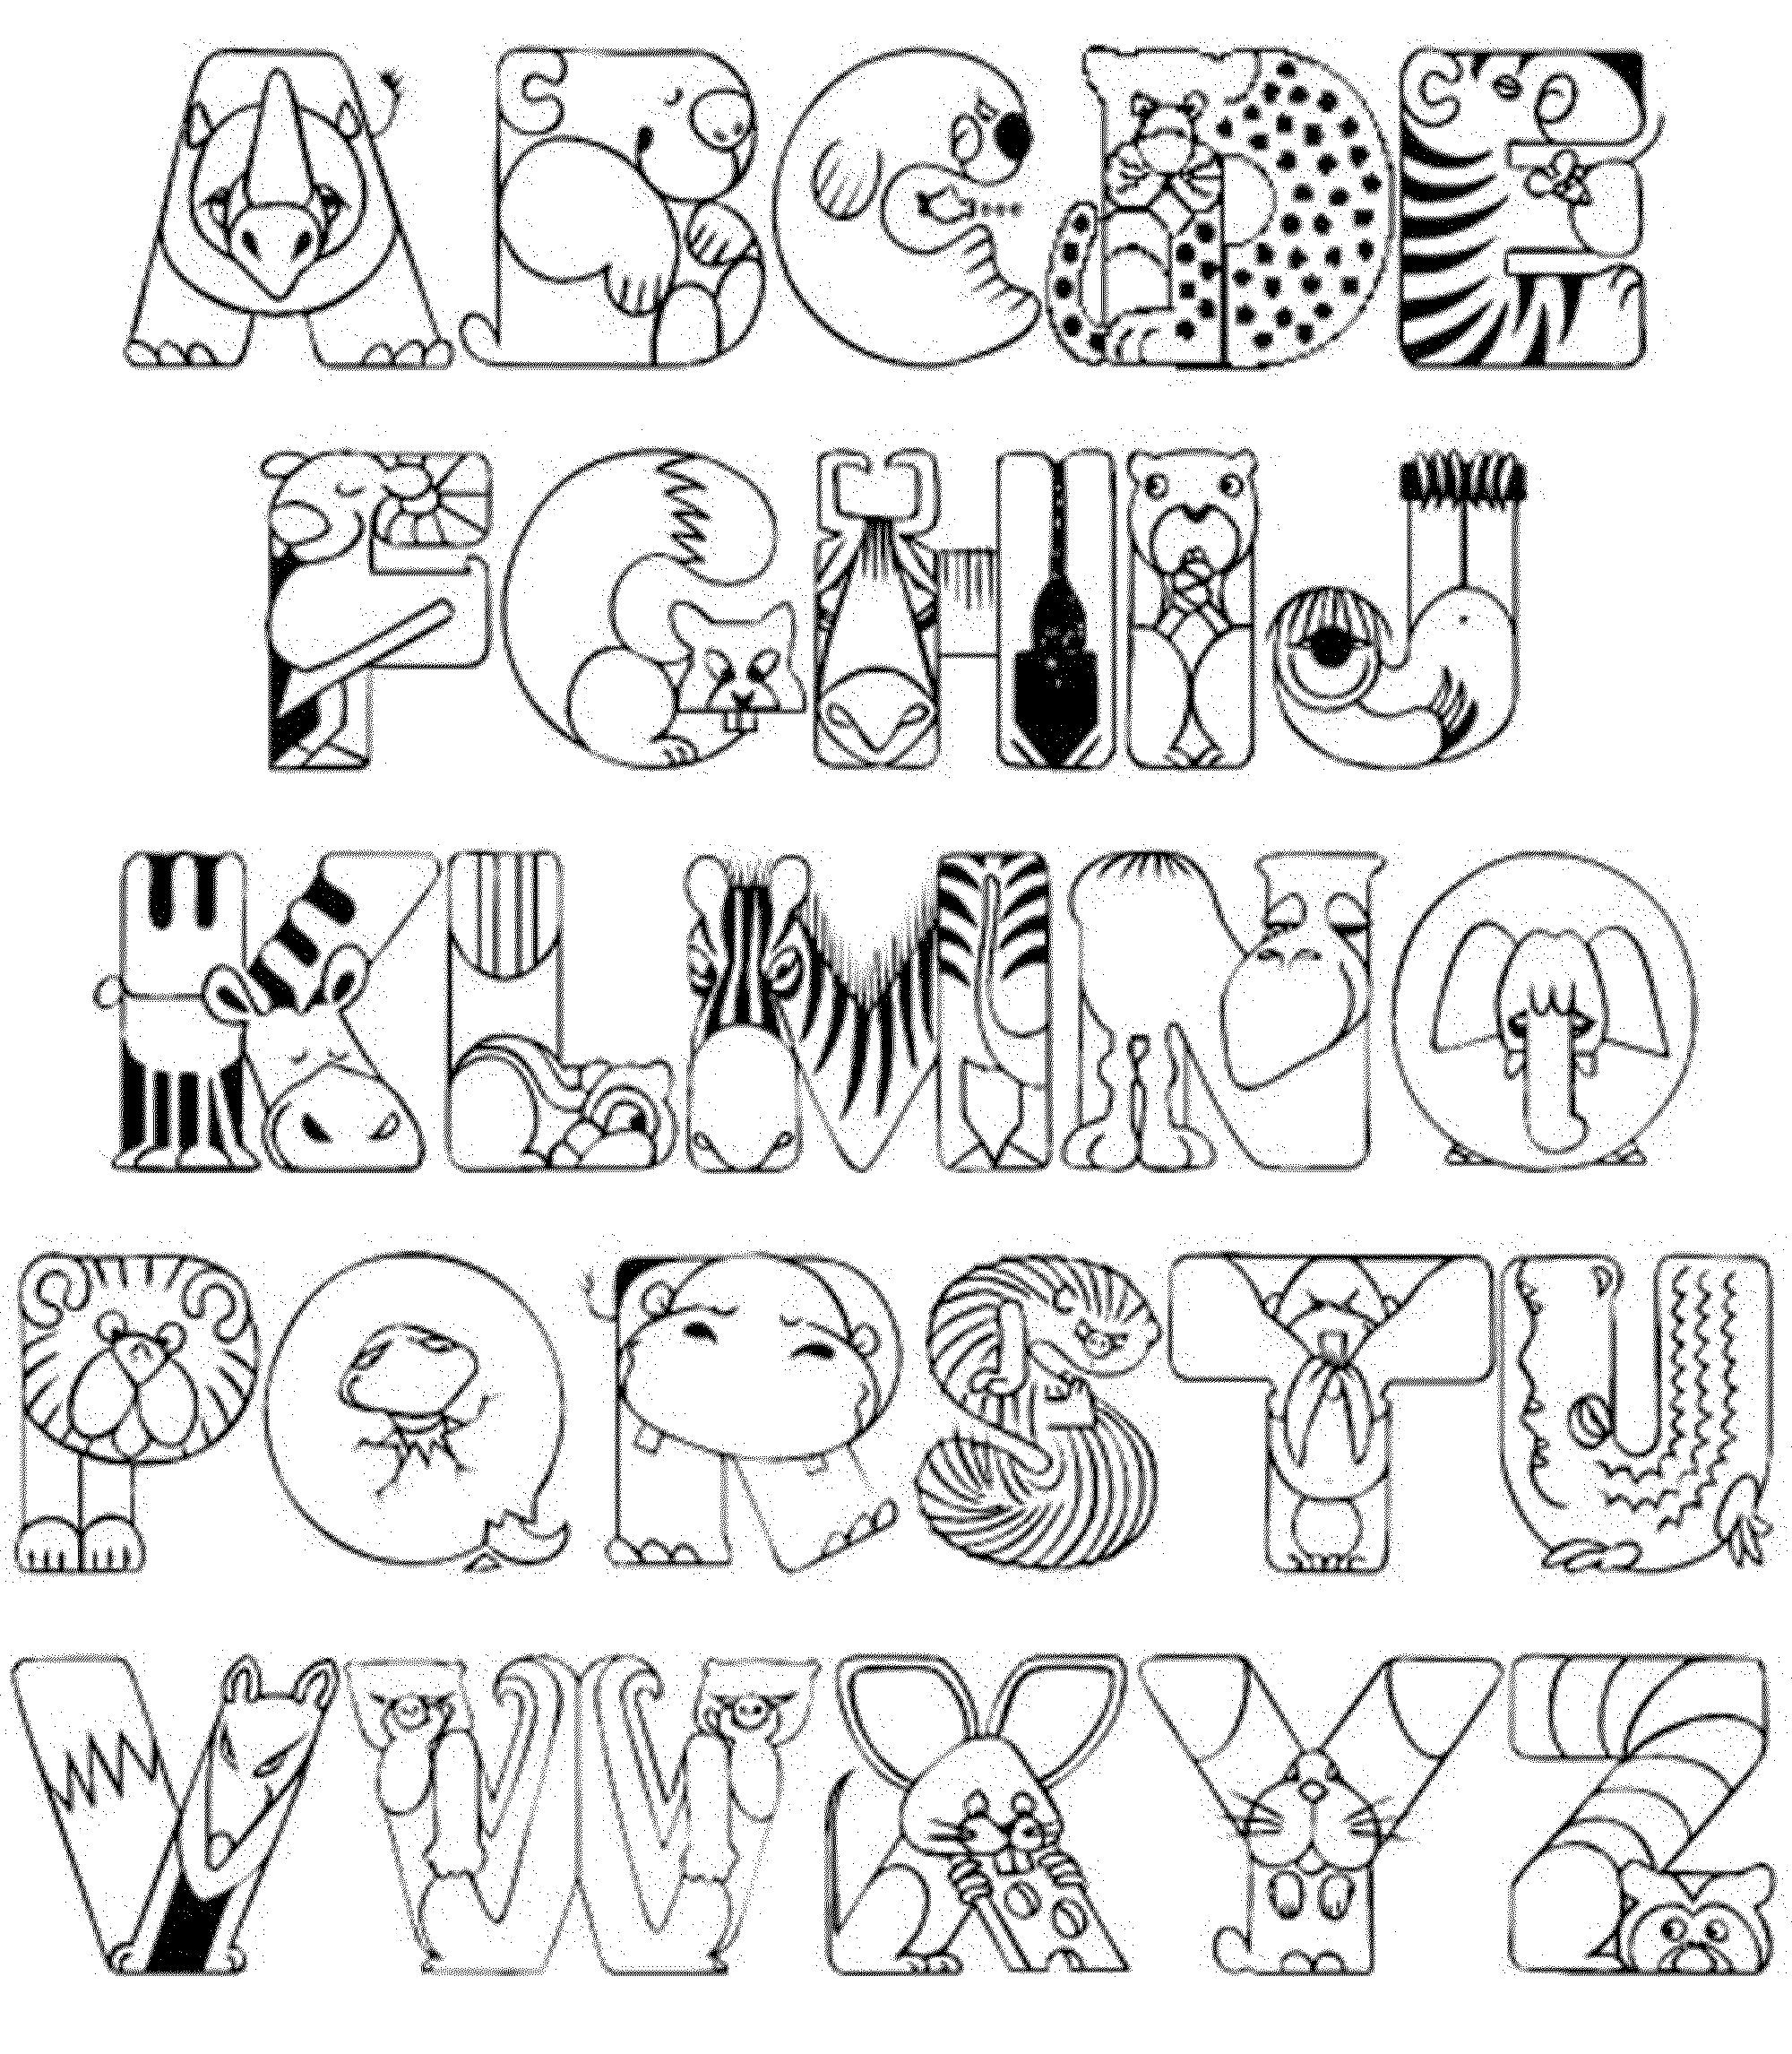 abc coloring pages for kindergarten - Activity Coloring Sheets